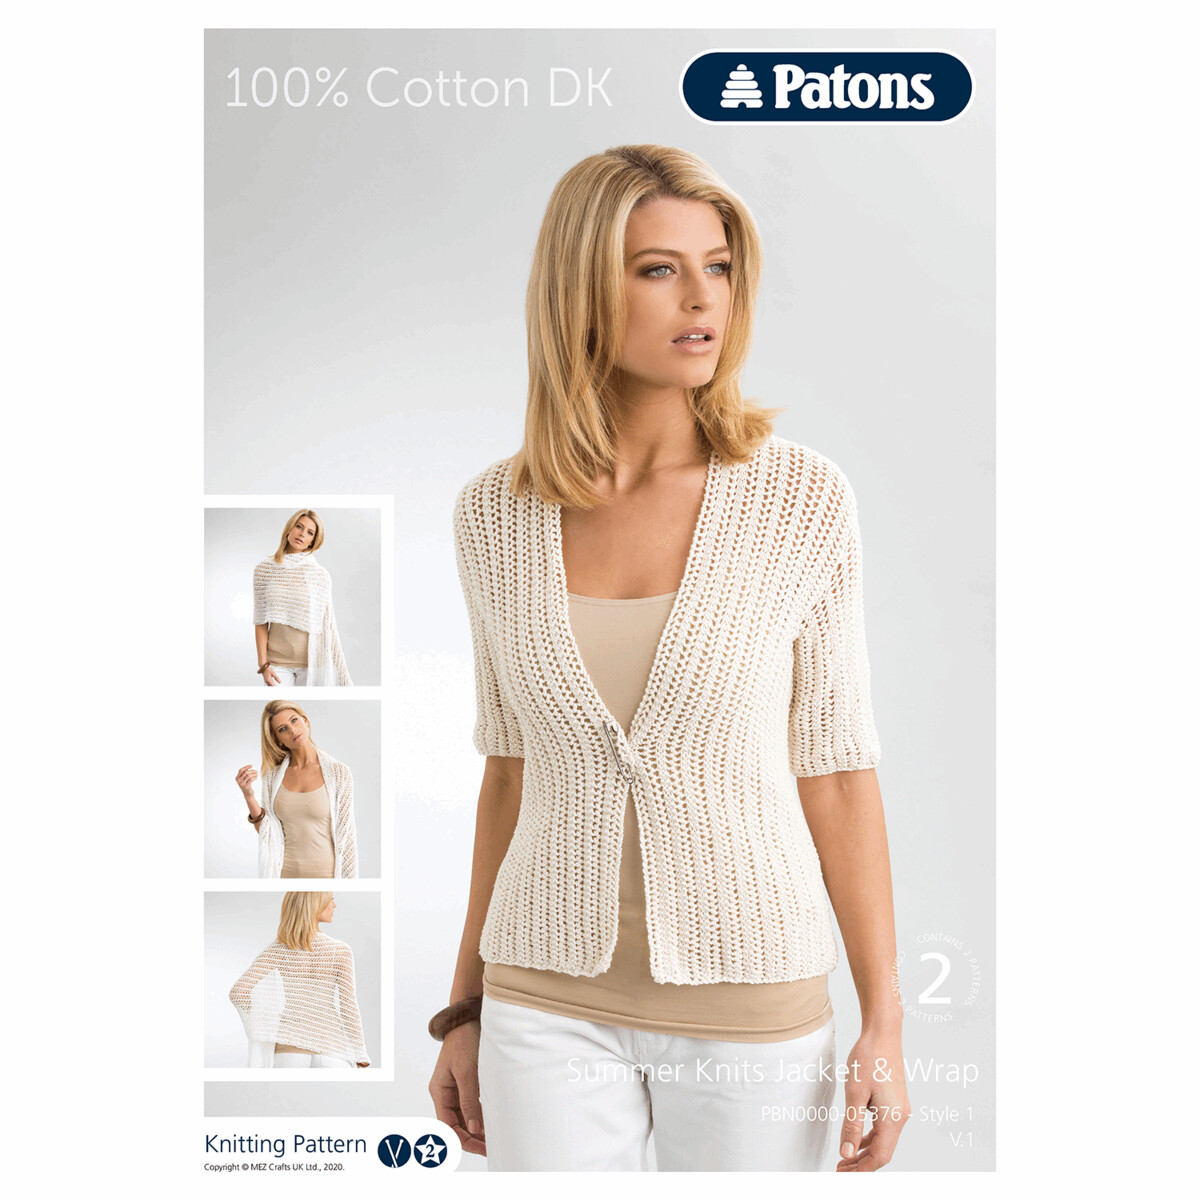 Summer Knits Jacket and Wrap in 100% cotton by Patons